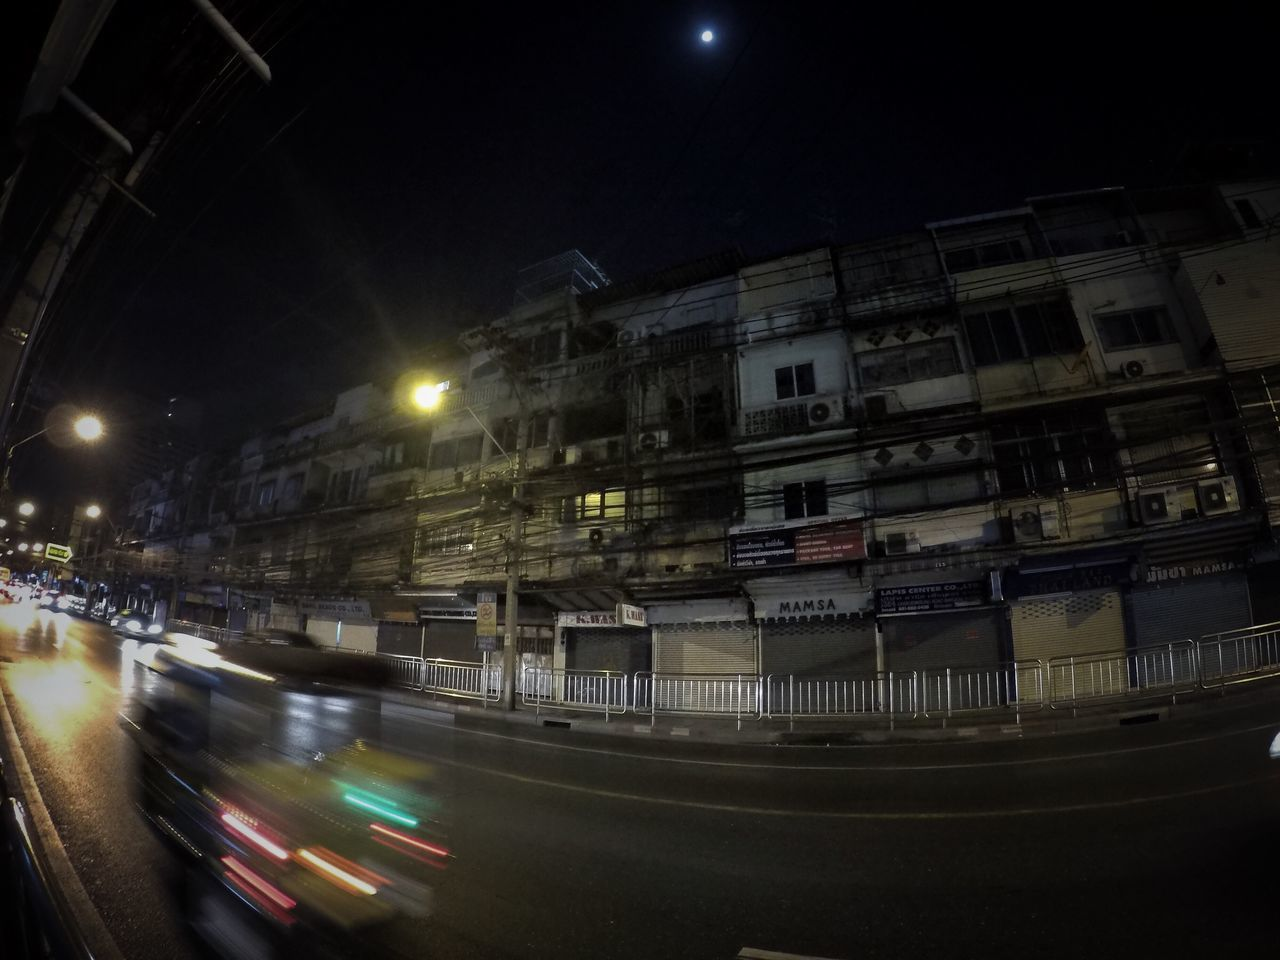 Night Illuminated Building Exterior Transportation City Built Structure Architecture Street Light Road Outdoors No People Moon Sky GoPrography Streetphotography Bangkok Thailand. Streetstyle Metal Industry Architecture Bangkok